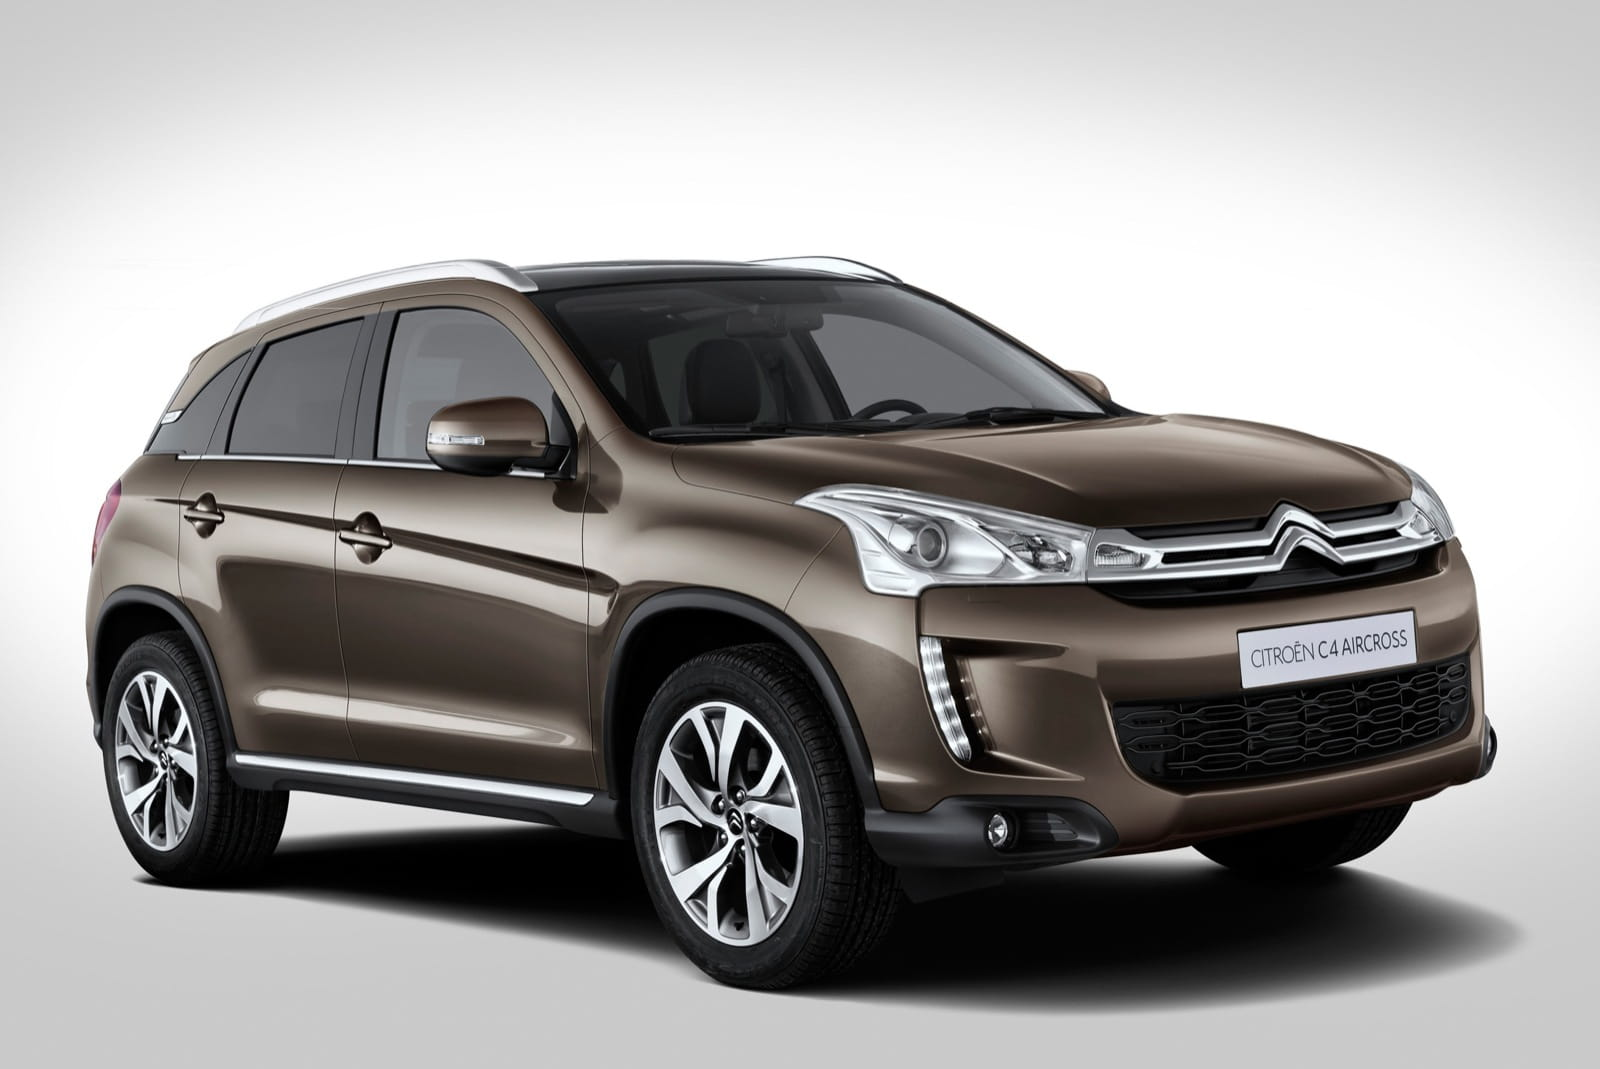 nuevo citroen c4 aircross 2015 images. Black Bedroom Furniture Sets. Home Design Ideas